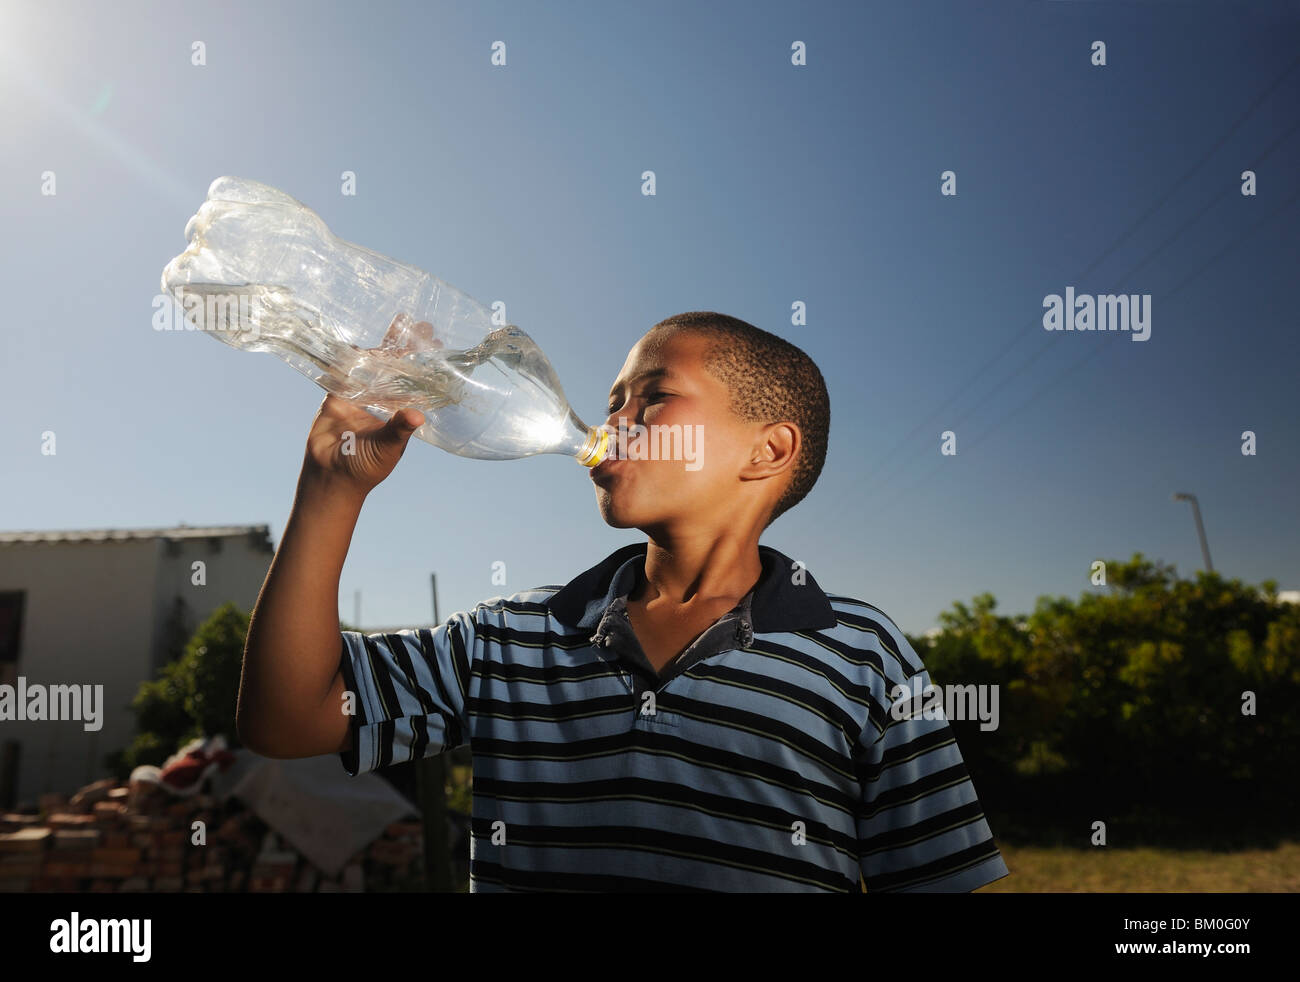 Boy (12-13) drinking water from plastic bottle, St Francis Bay, Sea Vista, Eastern Cape Province, South Africa - Stock Image